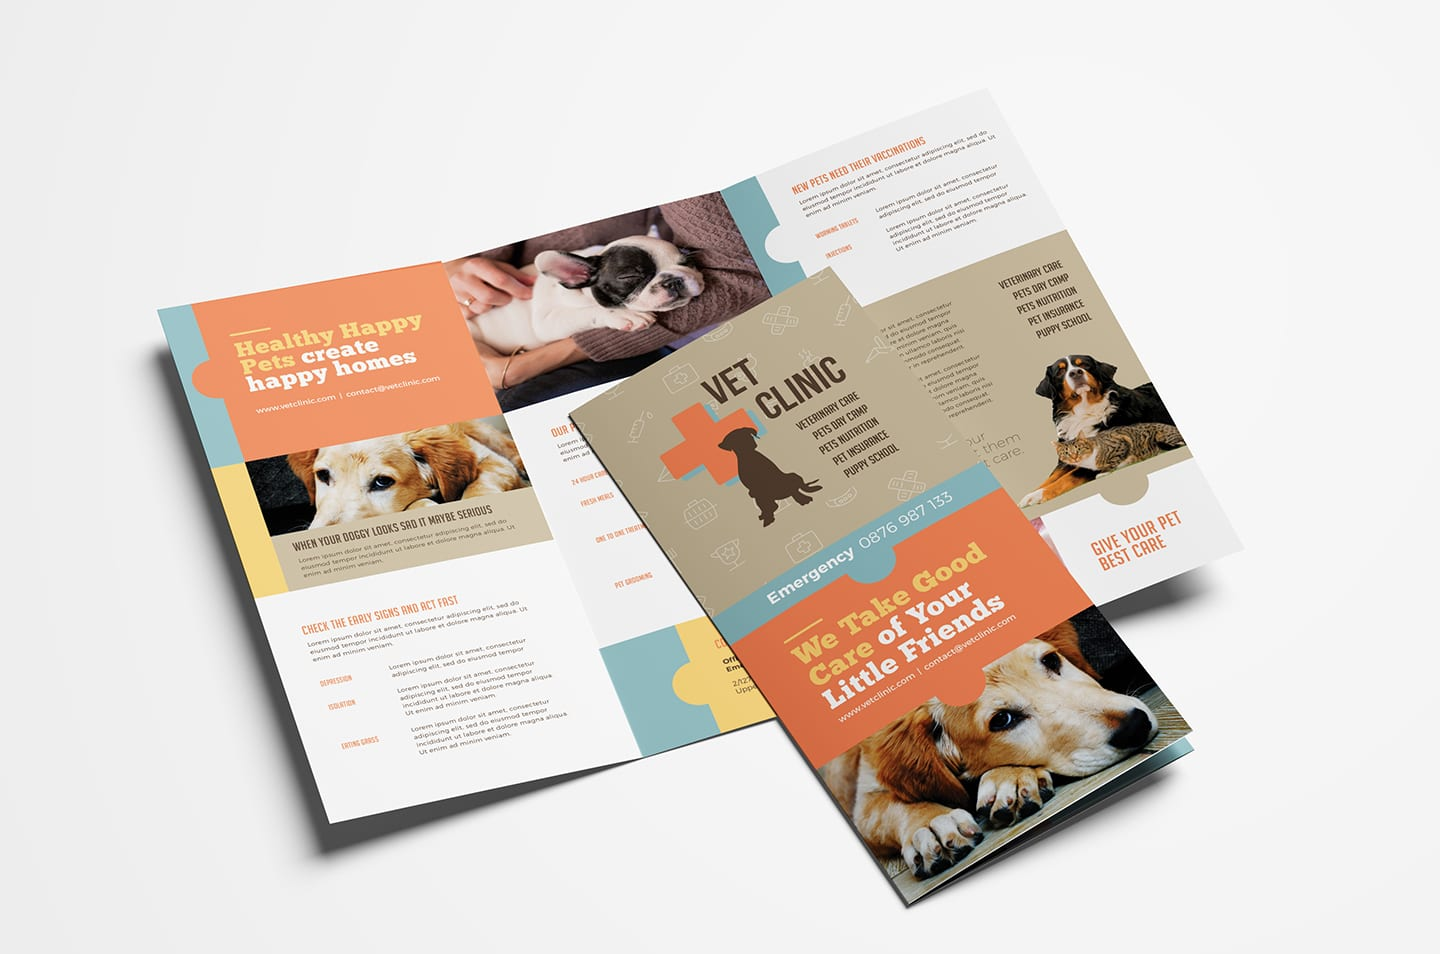 Vet Clinic Tri-Fold Brochure Template in PSD, Ai & Vector ... on veterinary referral form template, we love your pets template, veterinary job application template, veterinary new client form template, veterinary newsletter ideas, veterinary medical form template,